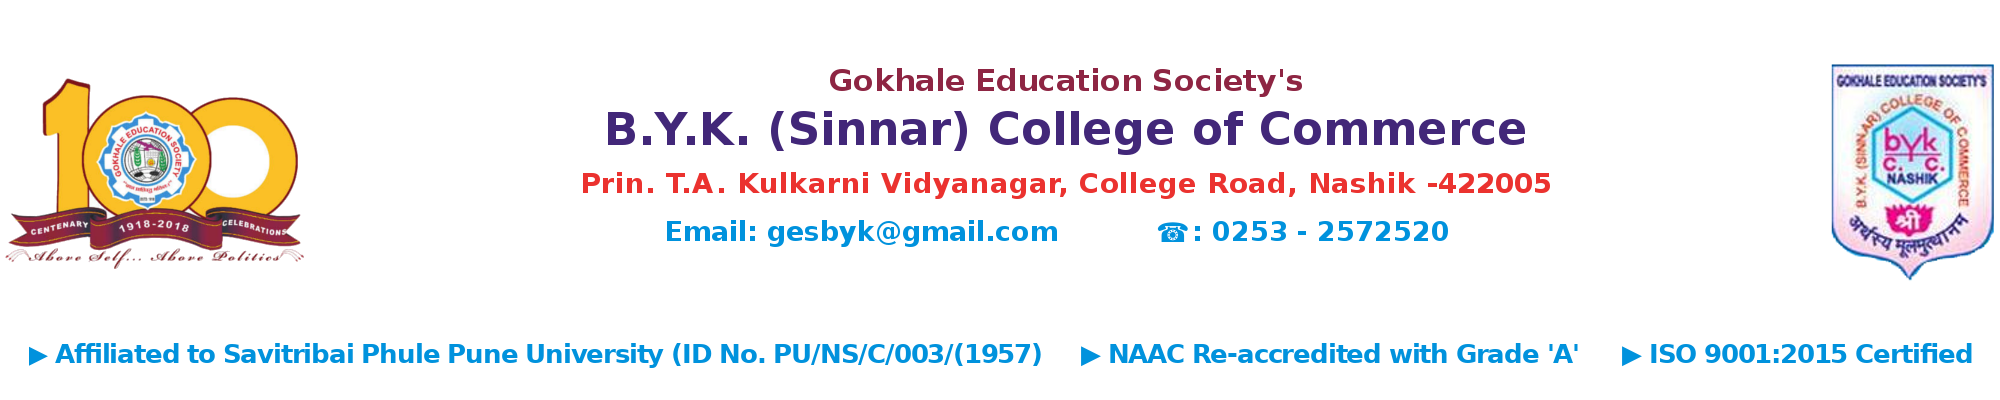 B.Y.K. (Sinnar) College of Commerce